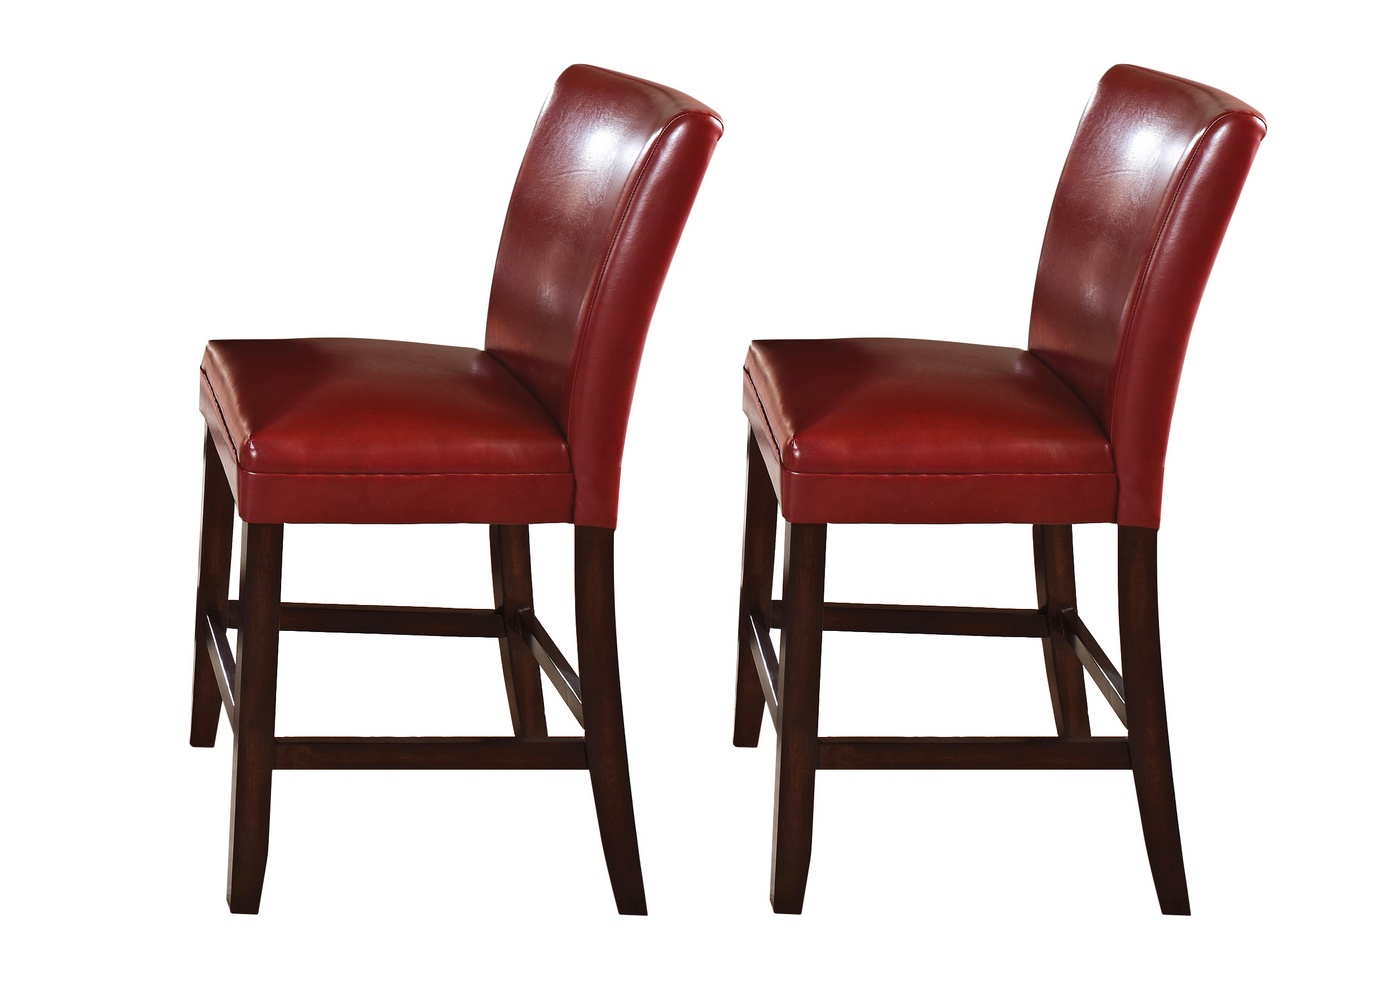 wheelchair height home depot kitchen chair covers set of 2 hartford red leather upholstered counter